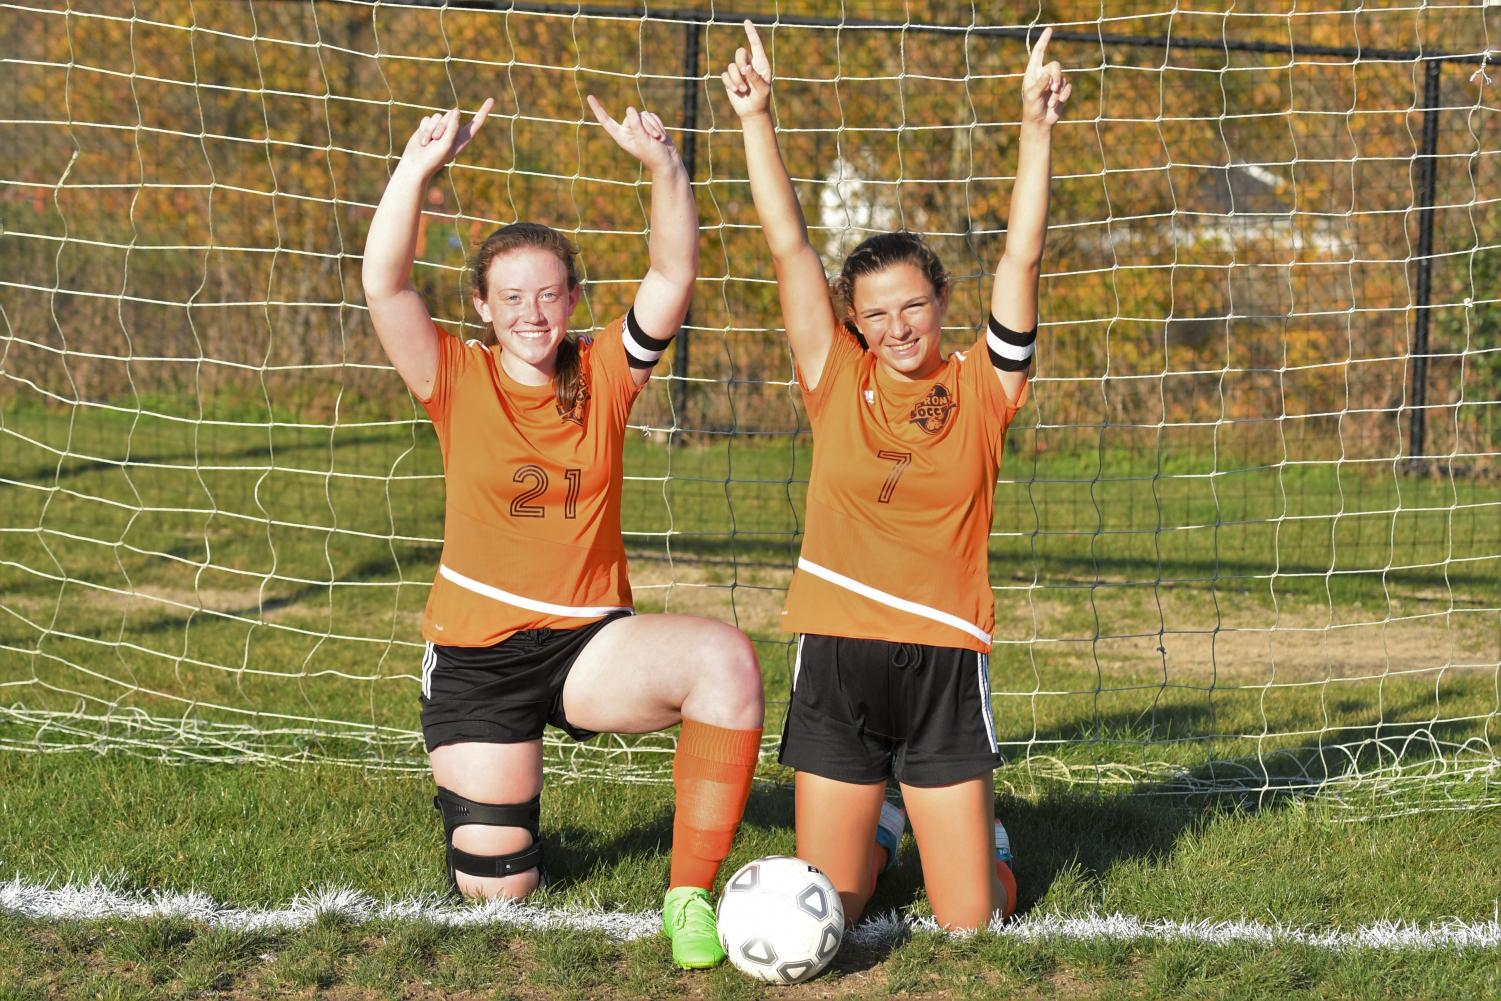 The game against central was the last home game for seniors Madison Soellner and Cate Baran.